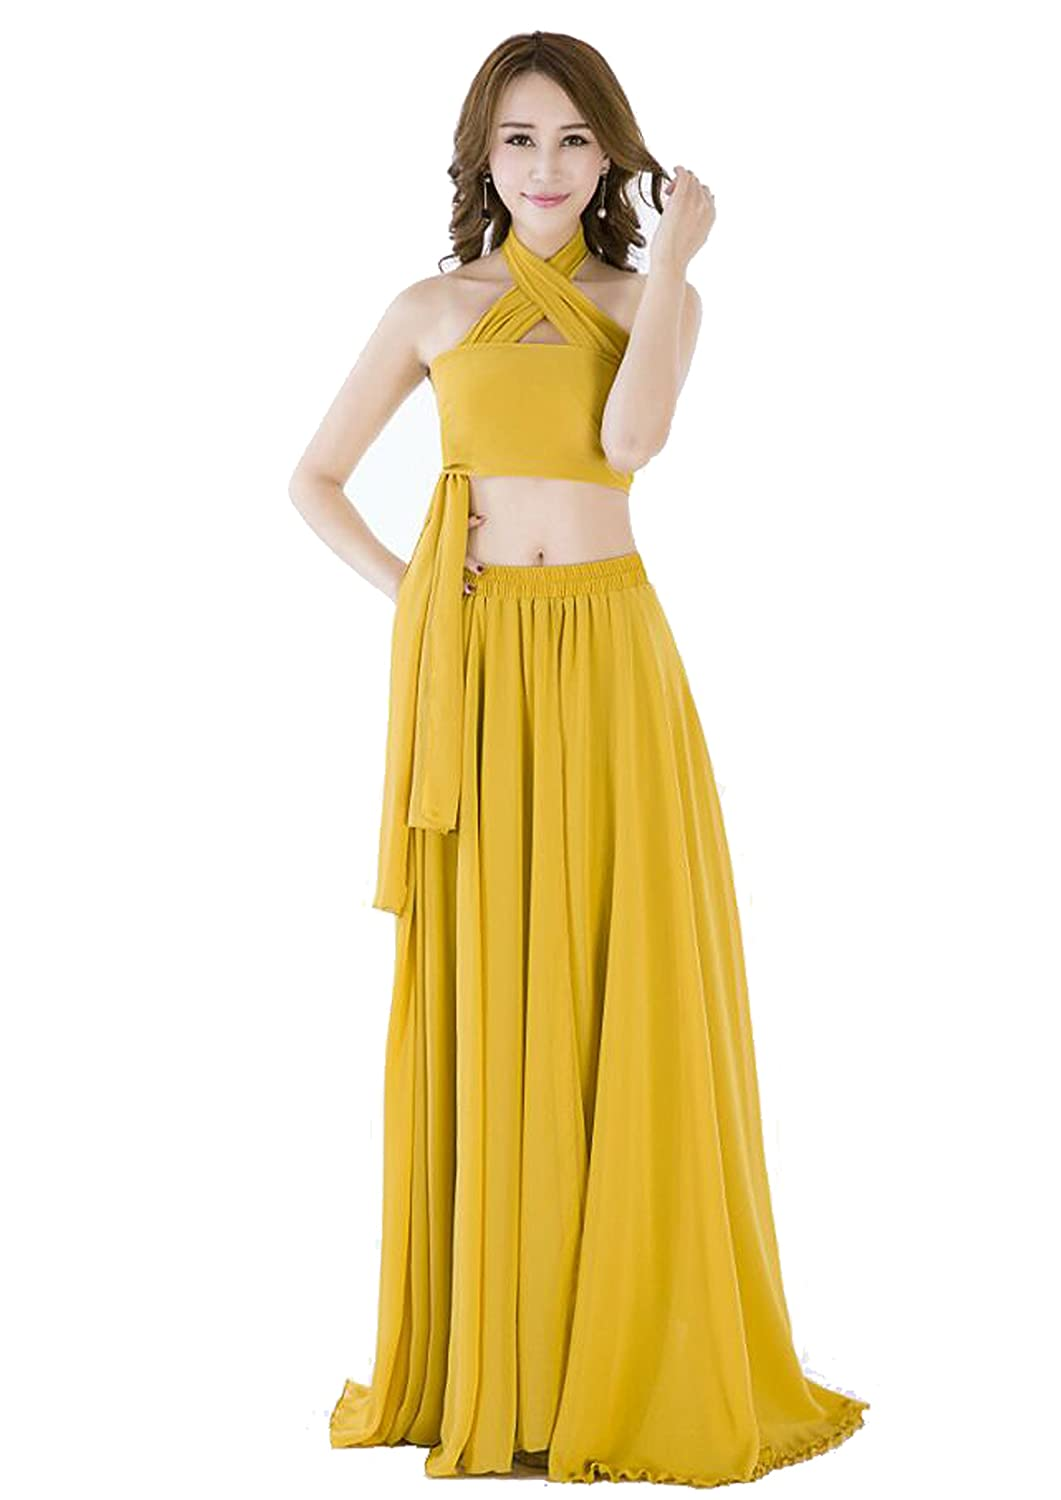 ea90195be596 Amazon.com: Sinreefsy Summer Chiffon High Waist Pleated Big Hem Floor/Ankle  Length Beach Maxi Skirt for Women Wedding Party: Clothing